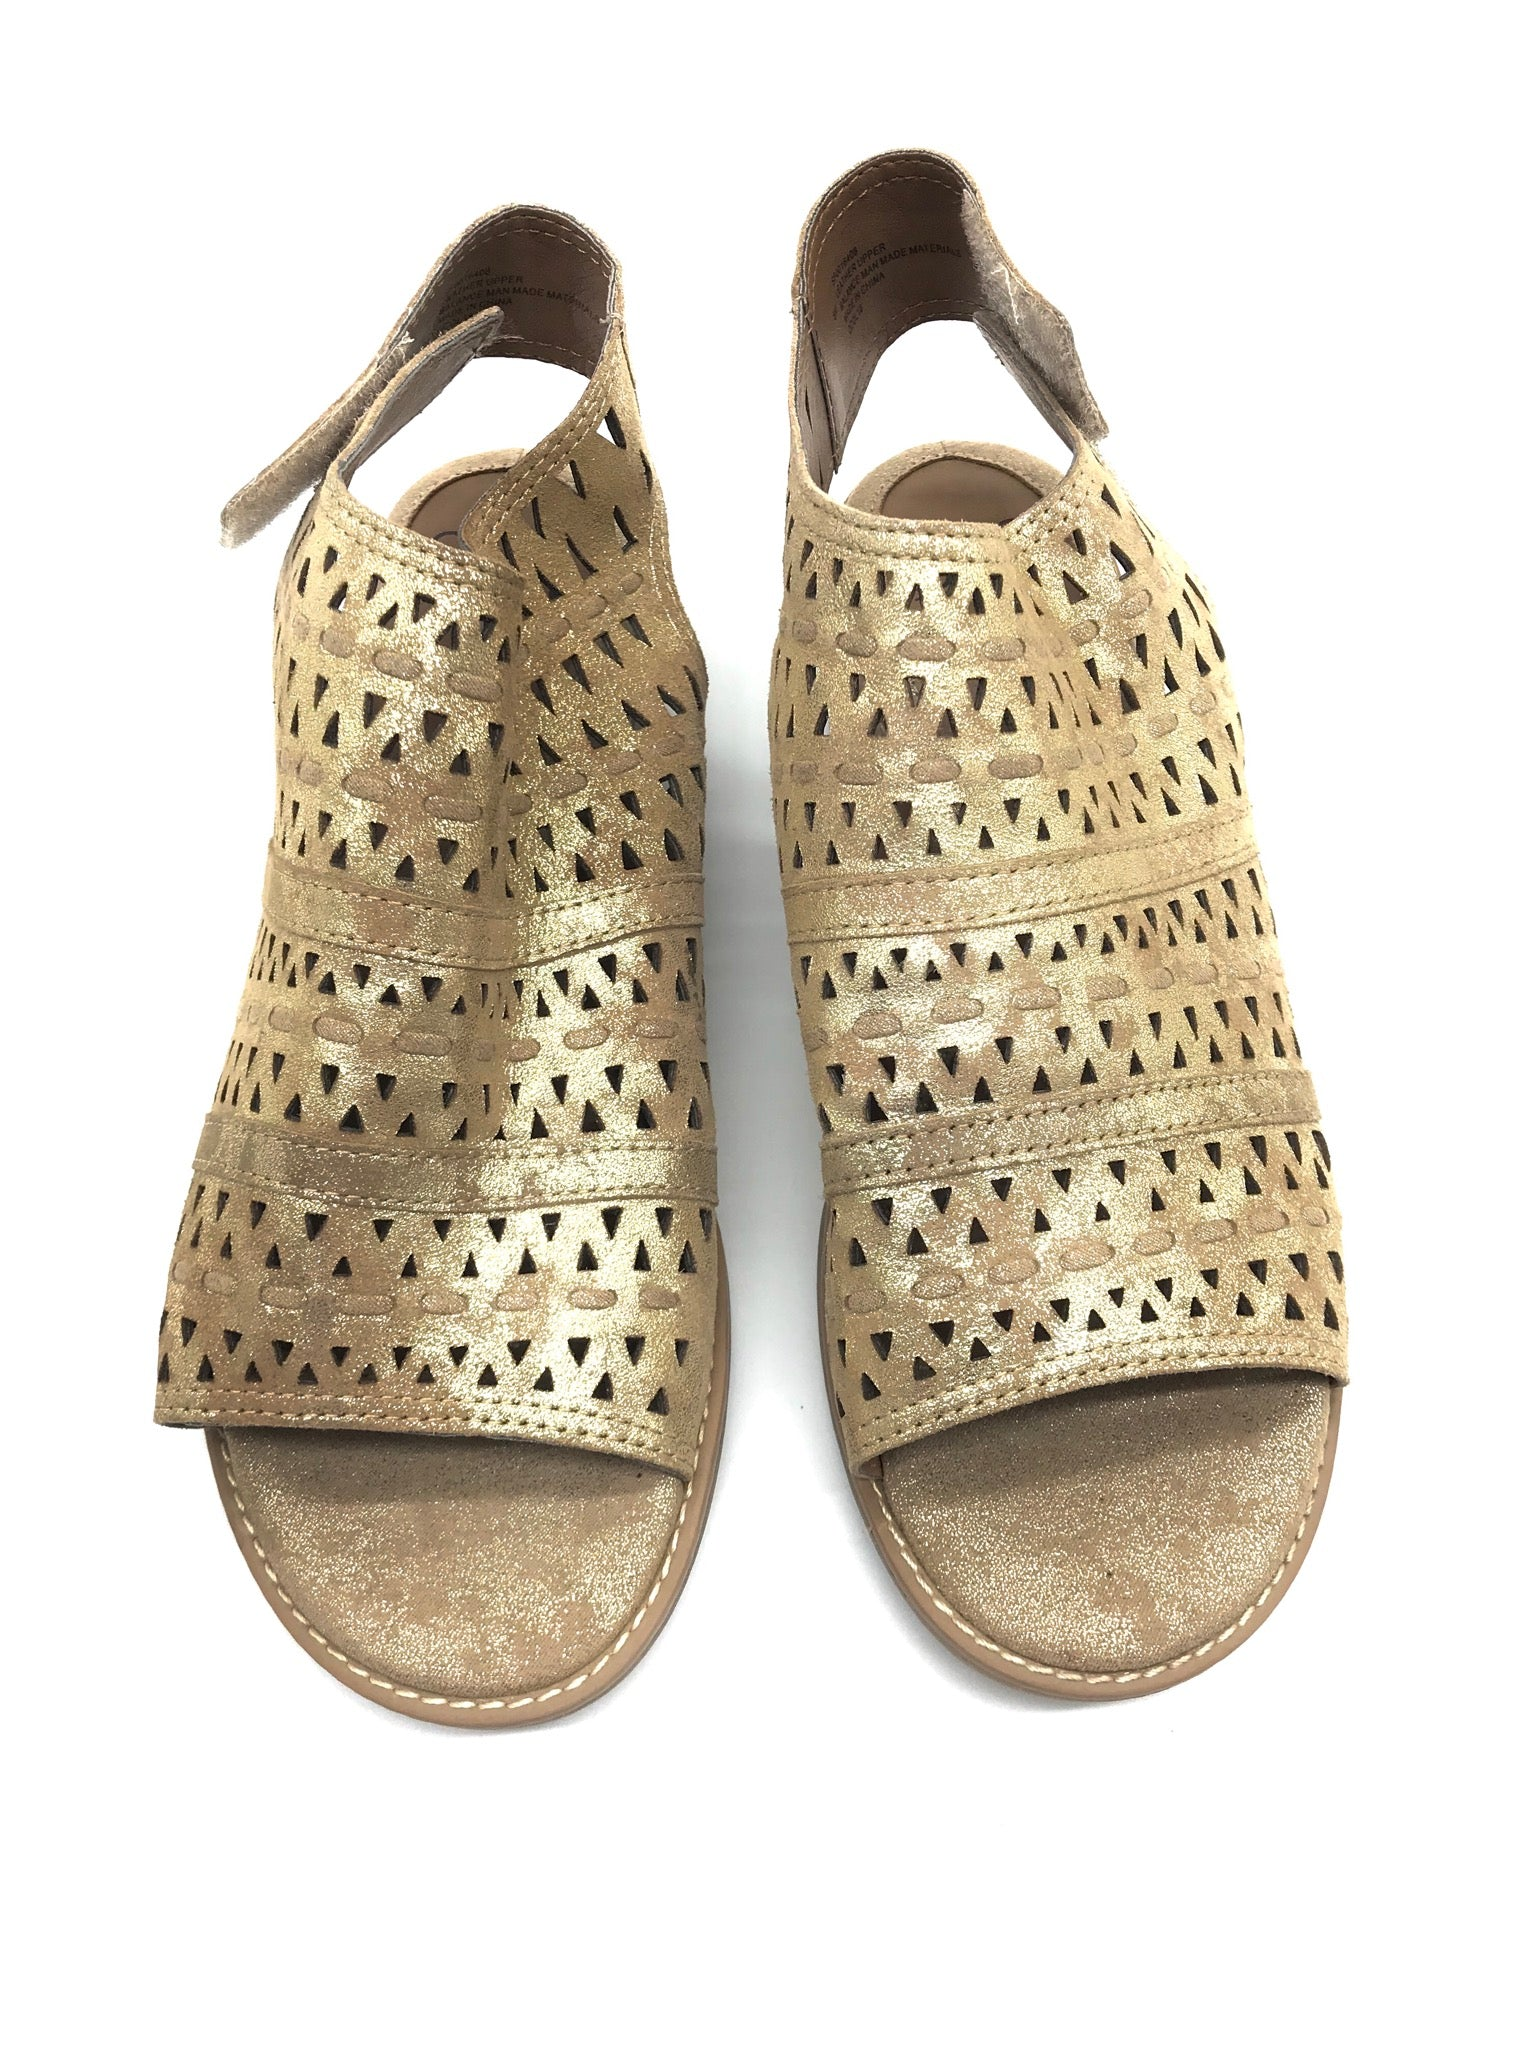 Primary Photo - BRAND: SOFFT <BR>STYLE: SANDALS FLAT <BR>COLOR: GOLD <BR>SIZE: 8 <BR>SKU: 262-26275-64339